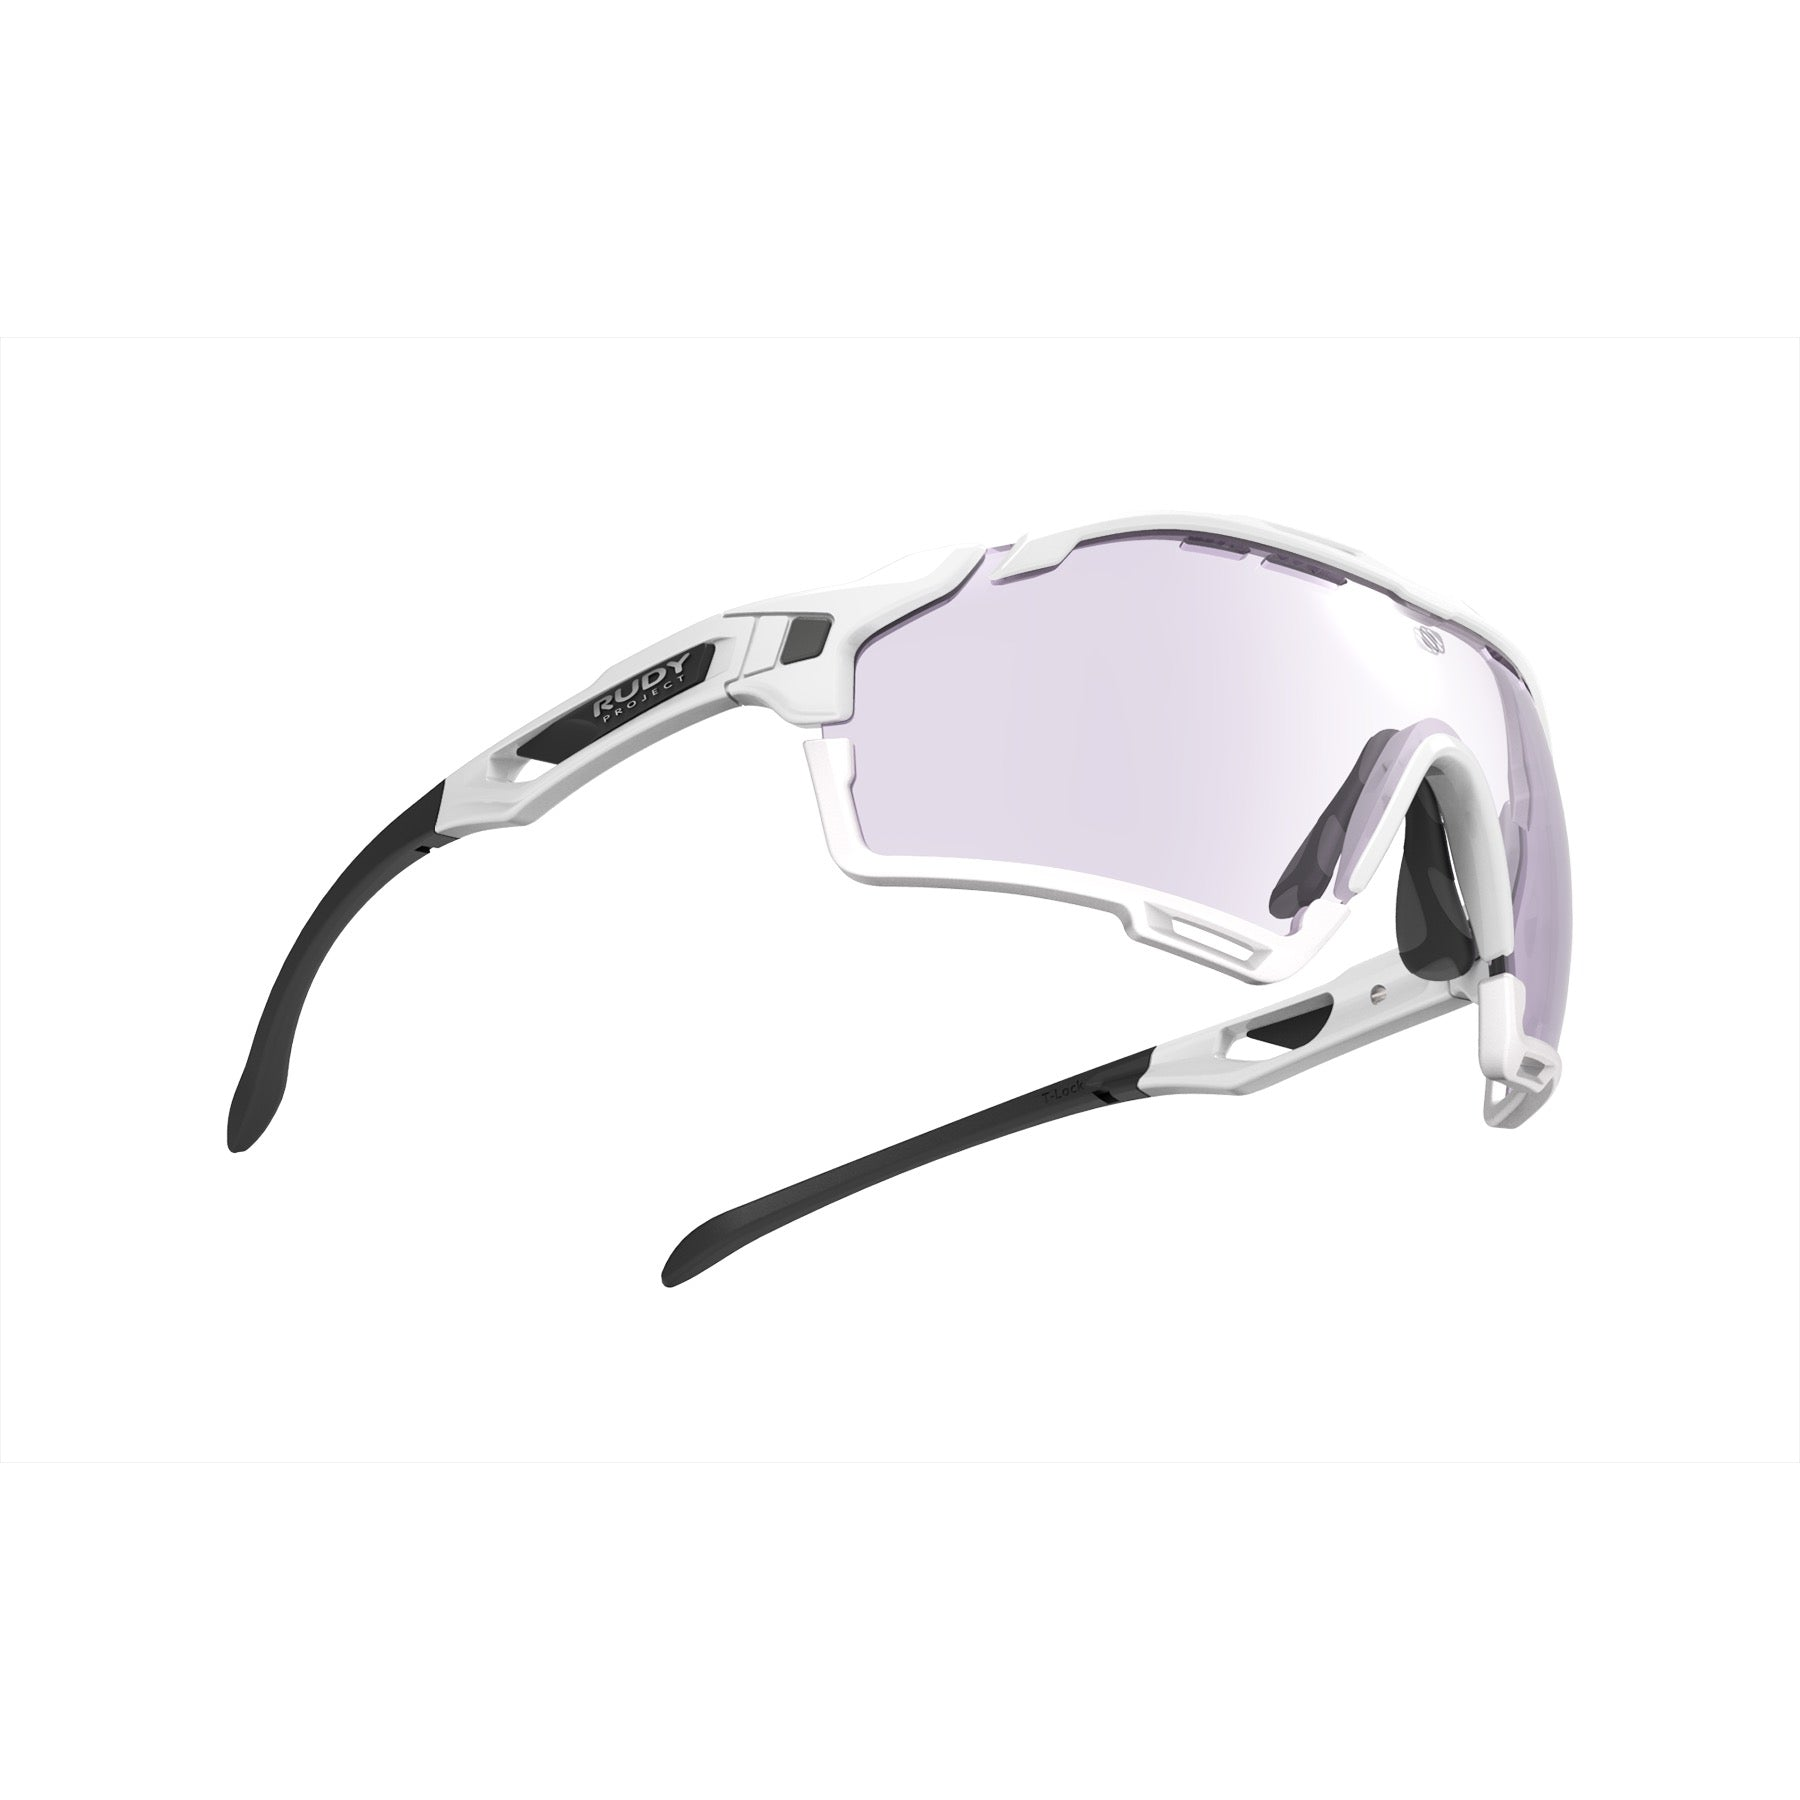 Rudy Project - Cutline - frame color: White Gloss - lens color: ImpactX-2 Photochromic Clear to Laser Purple - Bumper Color: White - photo angle: Bottom Front Angle Variant Hover Image